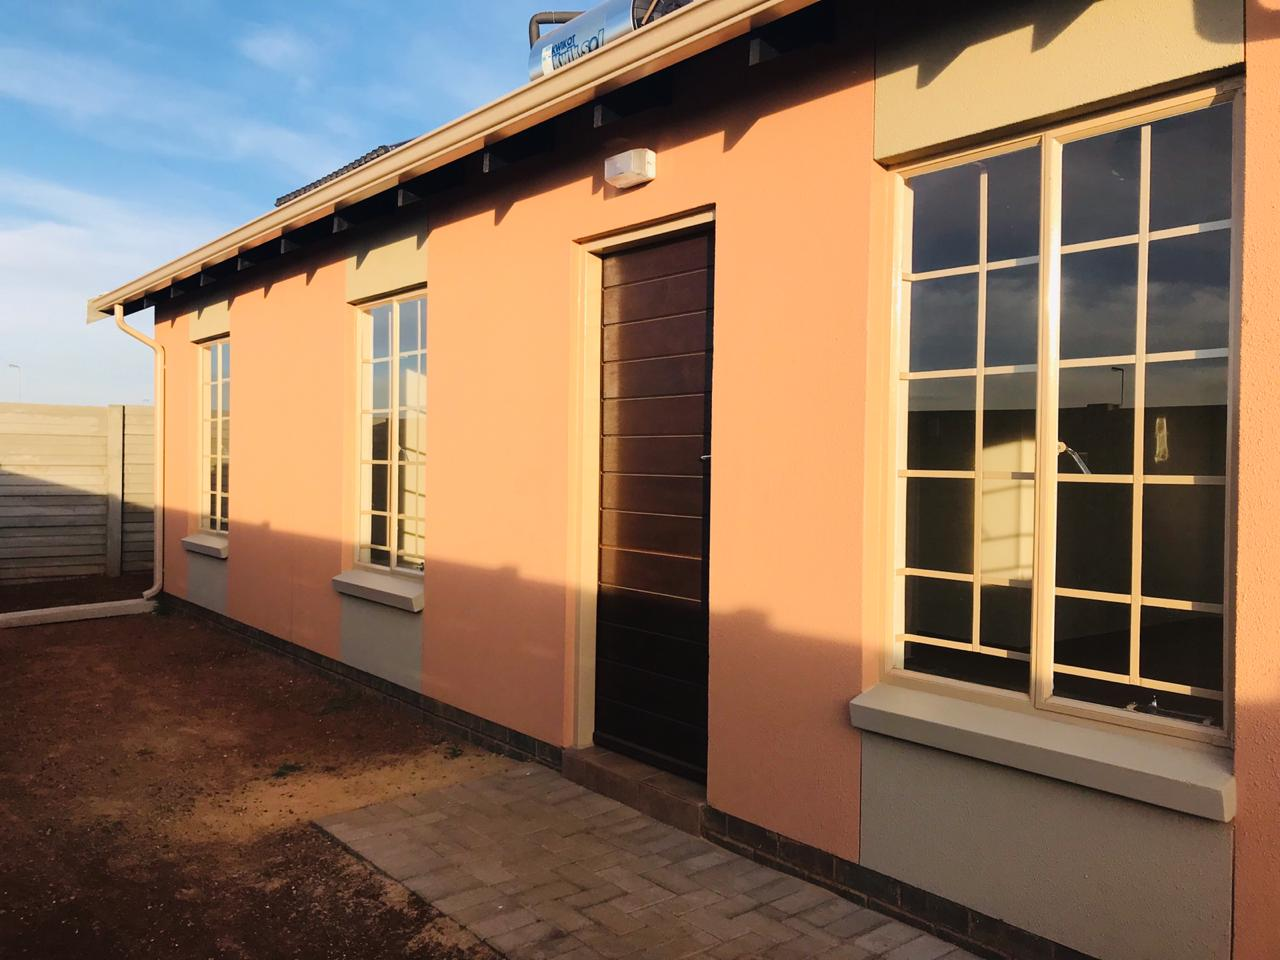 3 bedroom 2 bathroom house for sale in Sky City